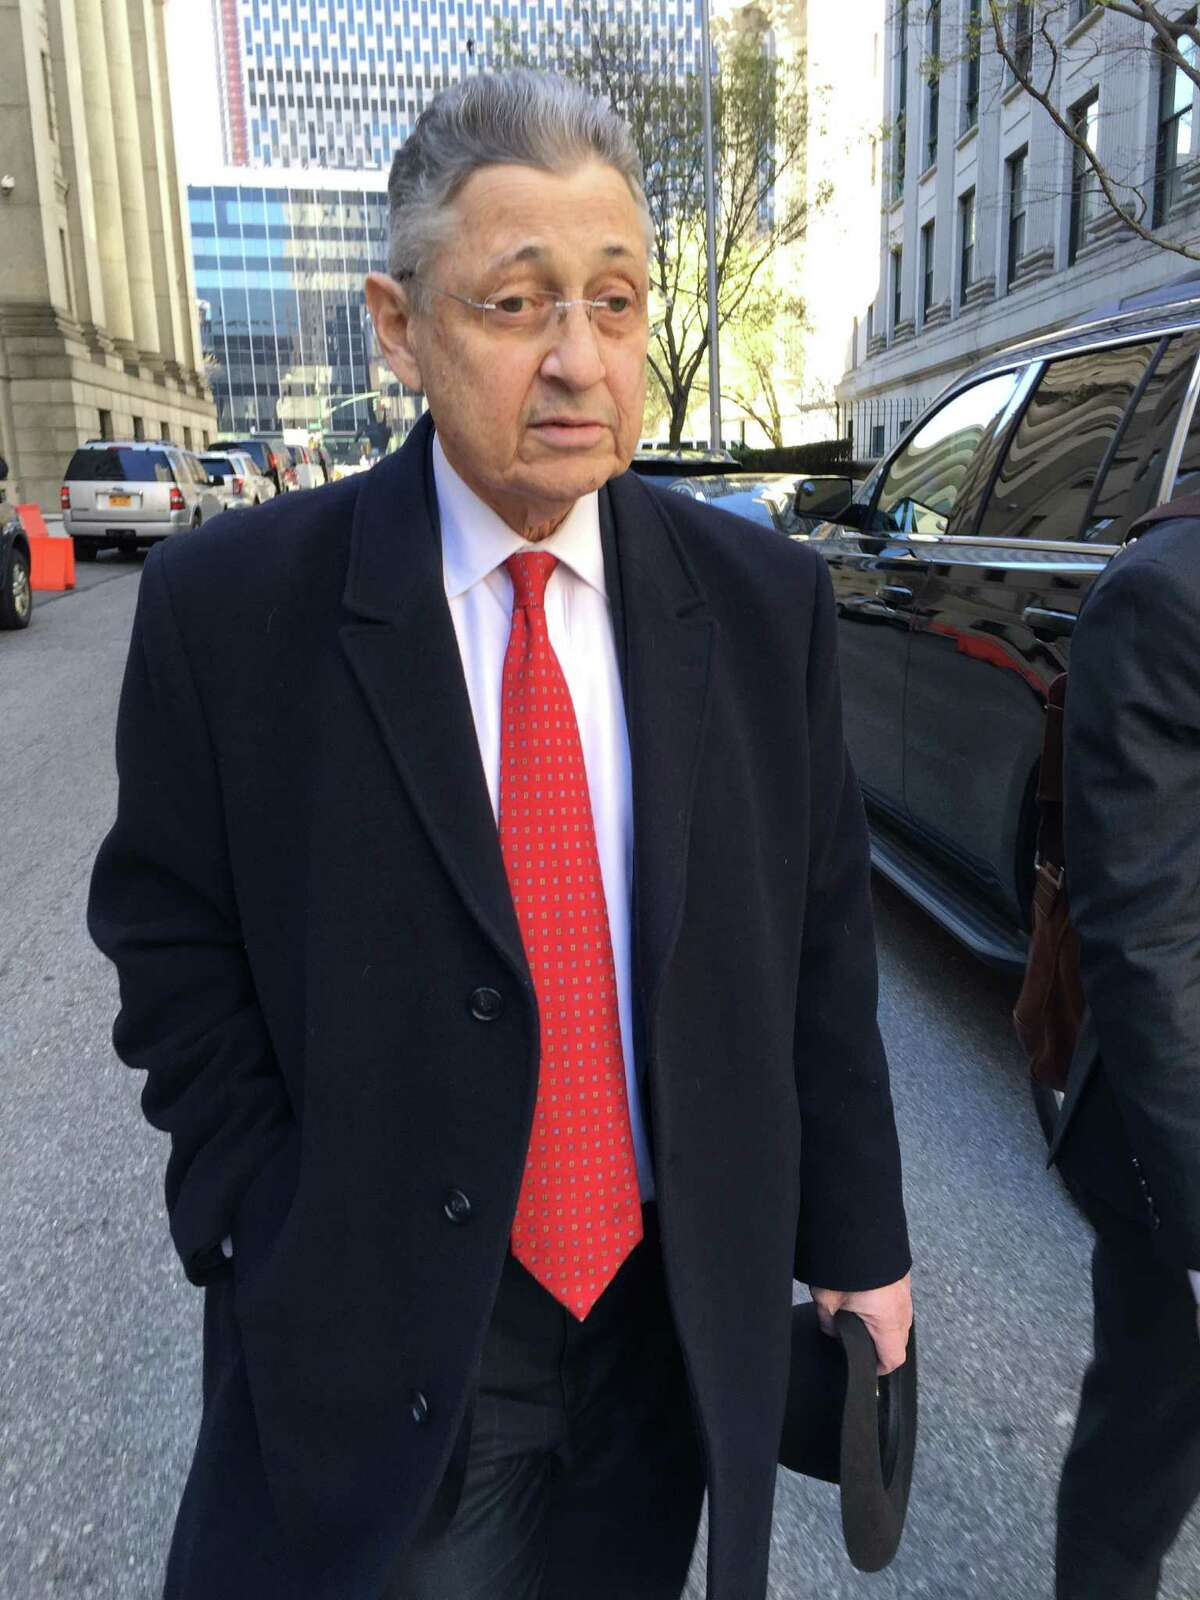 In this April 14, 2016 photo, former New York Assembly Speaker Sheldon Silver leaves court in New York. A judge says she plans to release information on Friday, April 15, that puts another blemish on the former Assembly Speaker's record in office. The 72-year-old Democrat was convicted in November in a $5 million corruption case. (AP Photo/Larry Neumeister)